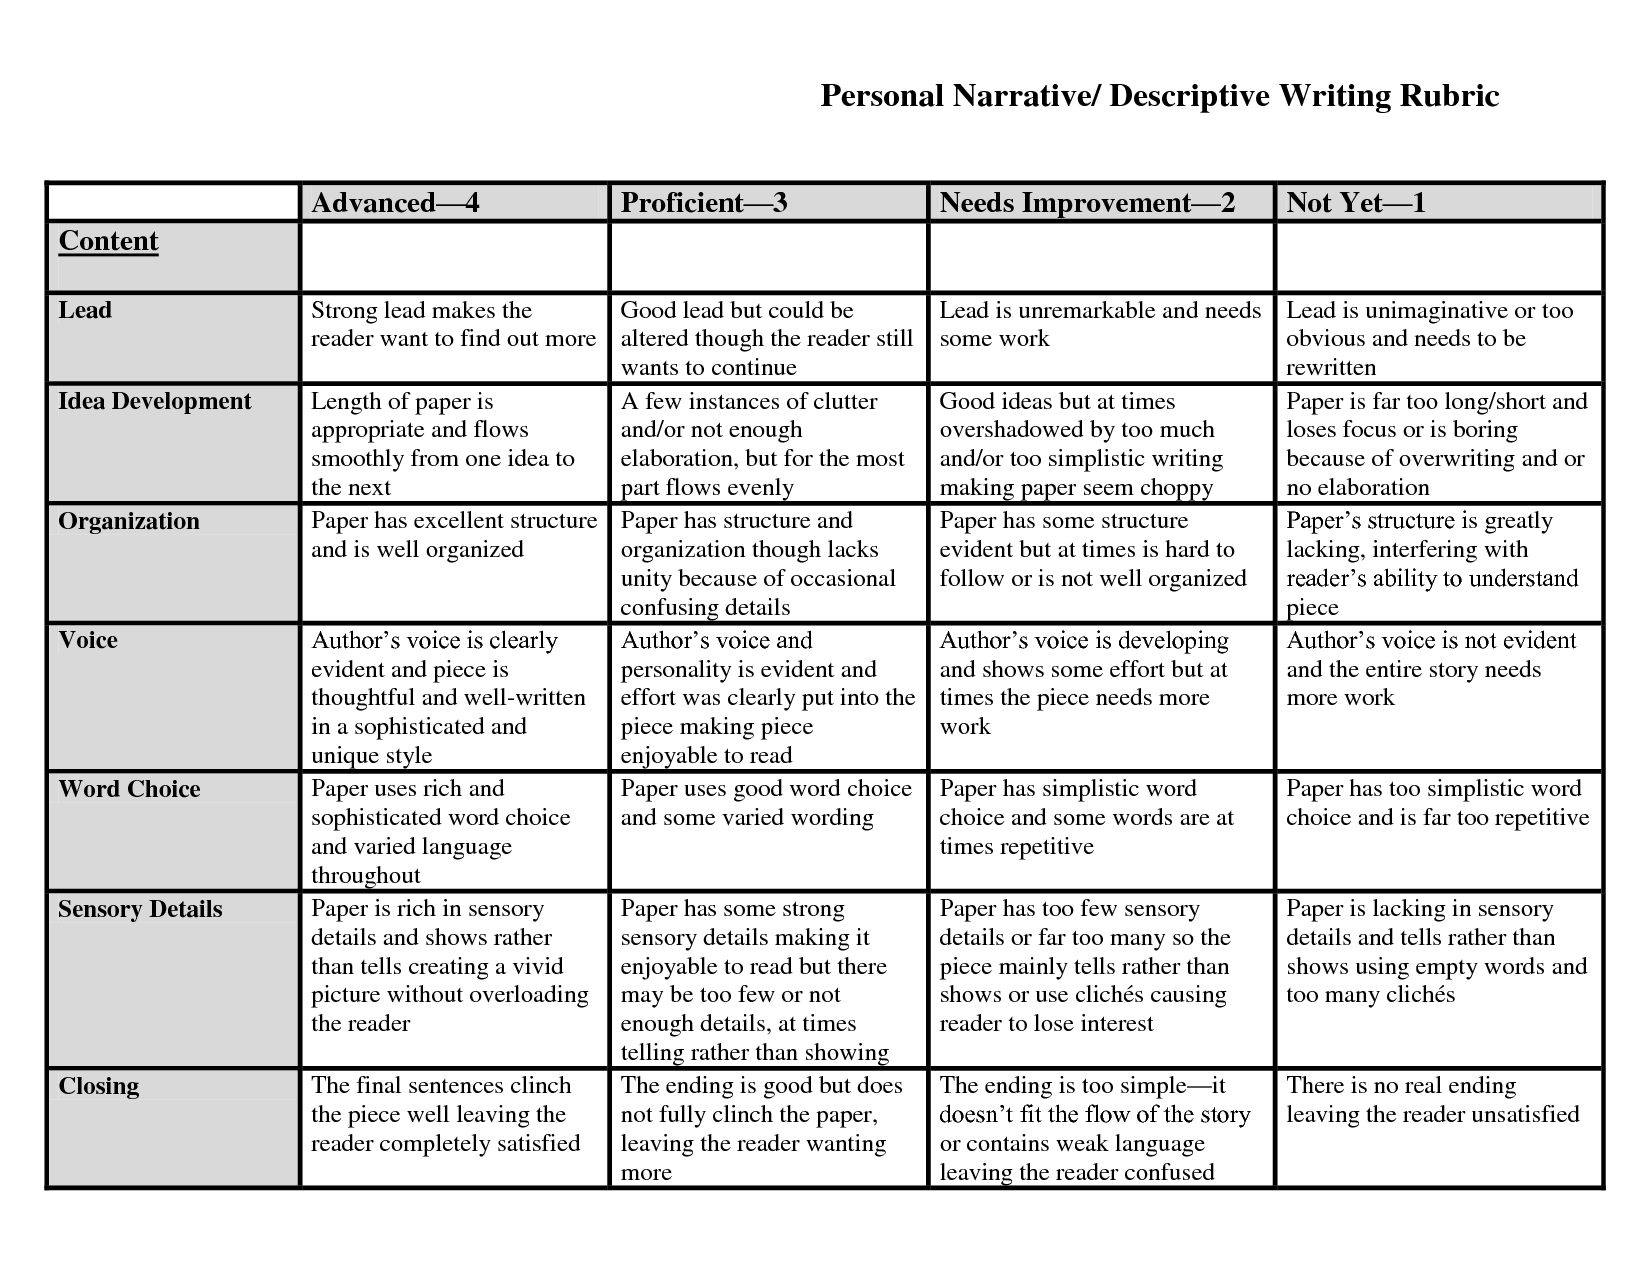 rubrics for creative writing assignments Rubrics for creative writing assignments rubrics for creative writing assignments broadway terrace zip 10040 point of view help you choose personal statement 50.